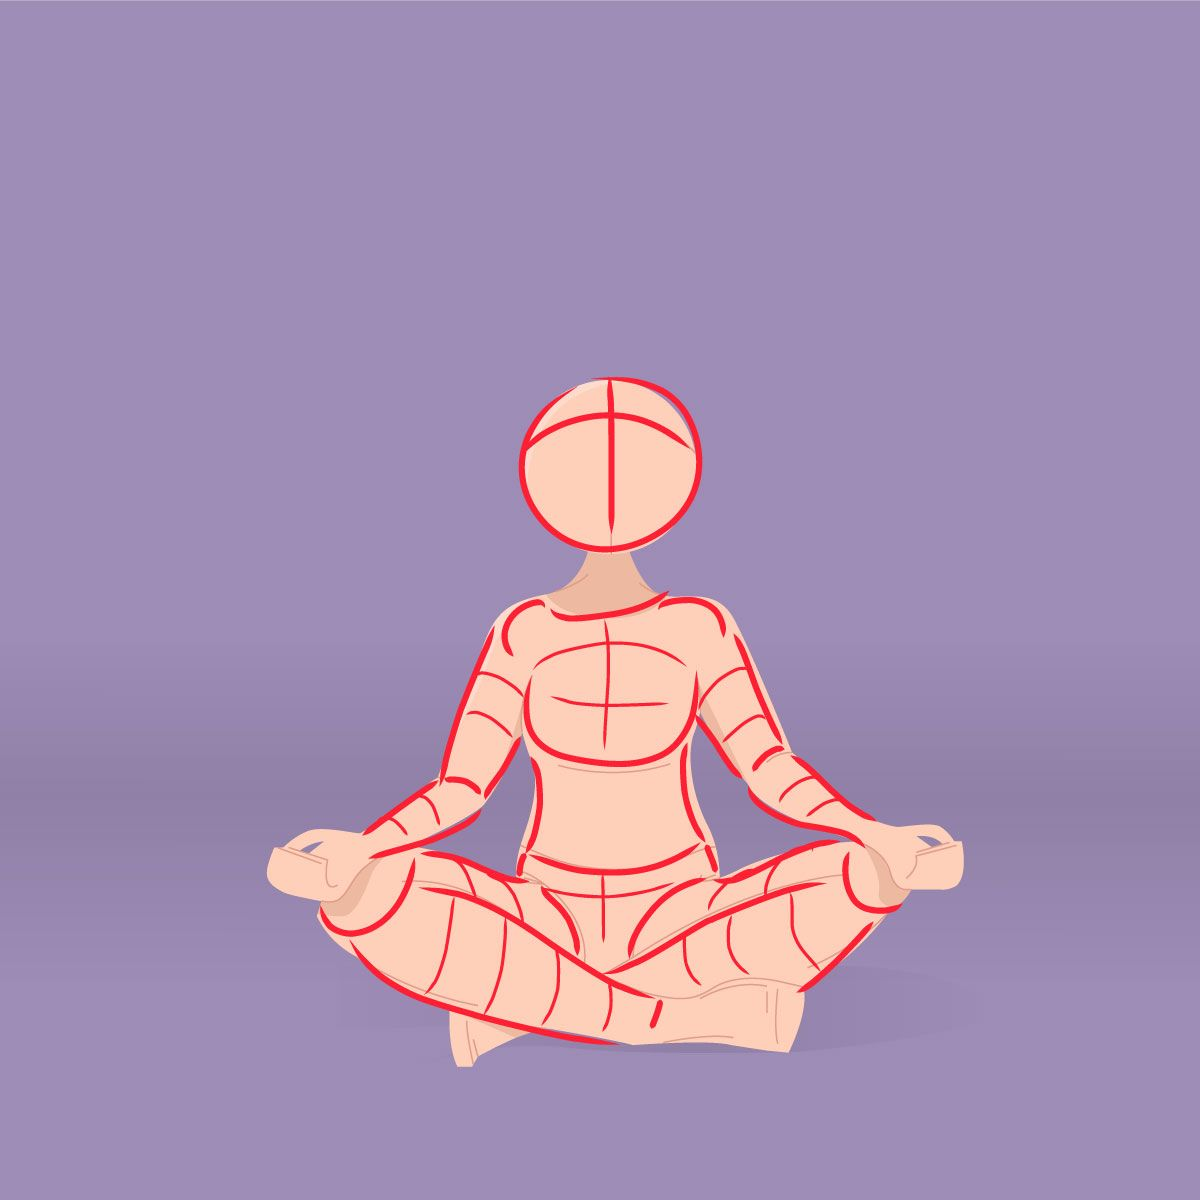 Pose 030 Reference Pose Meditation By Elisabeth Deim Meditation Pose Drawing Art Reference Photos Art Reference Poses